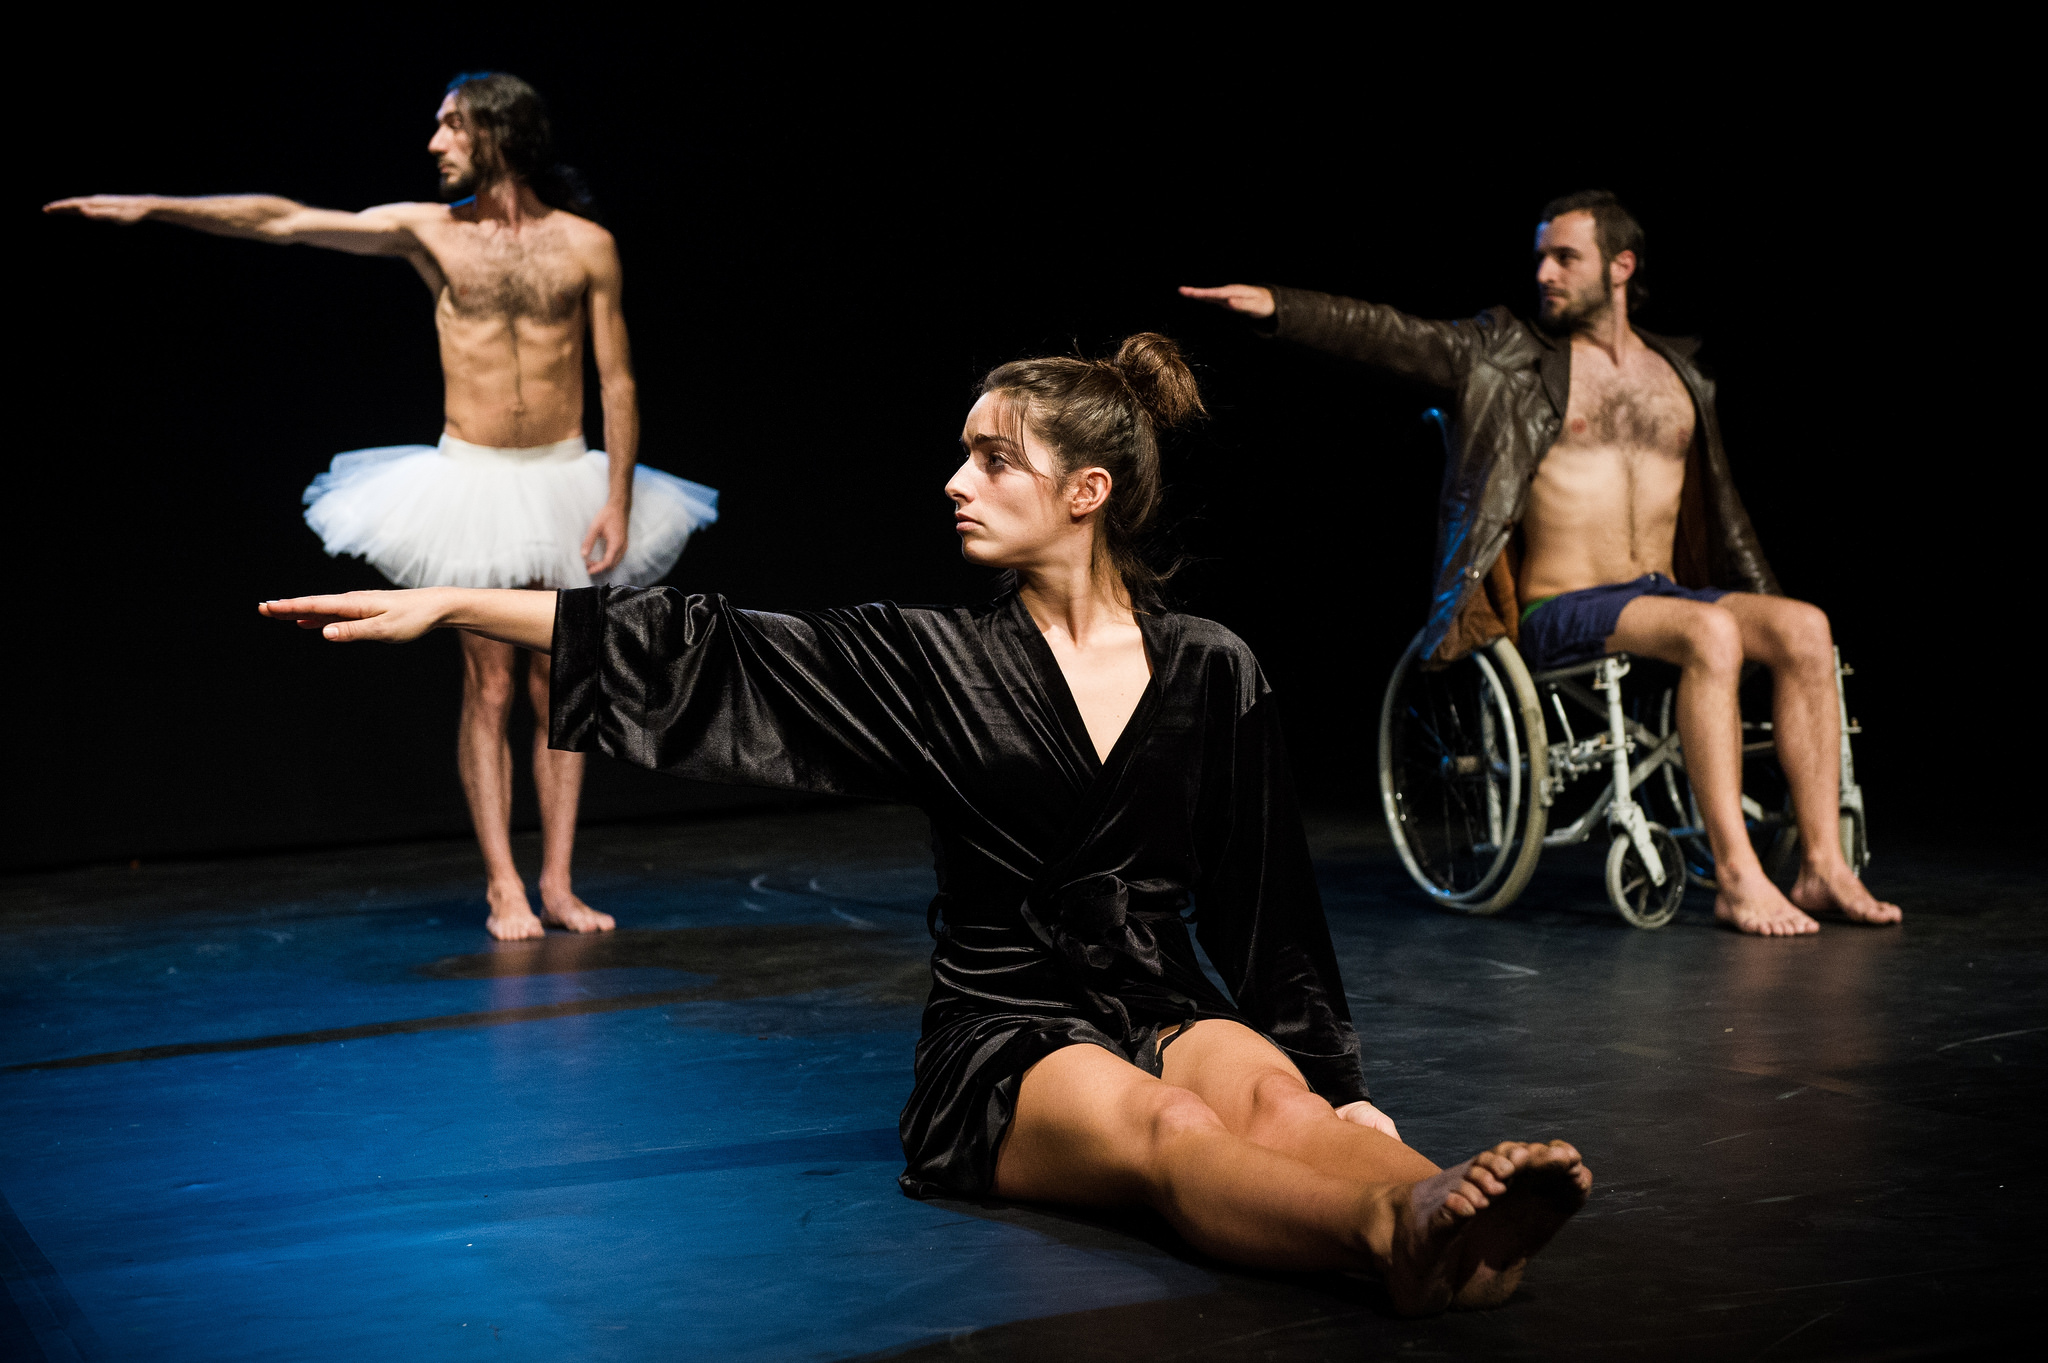 Three dancers pose with their right arms outstretched. One is standing, one is seated on the stage floor, and one is a wheelchair user.